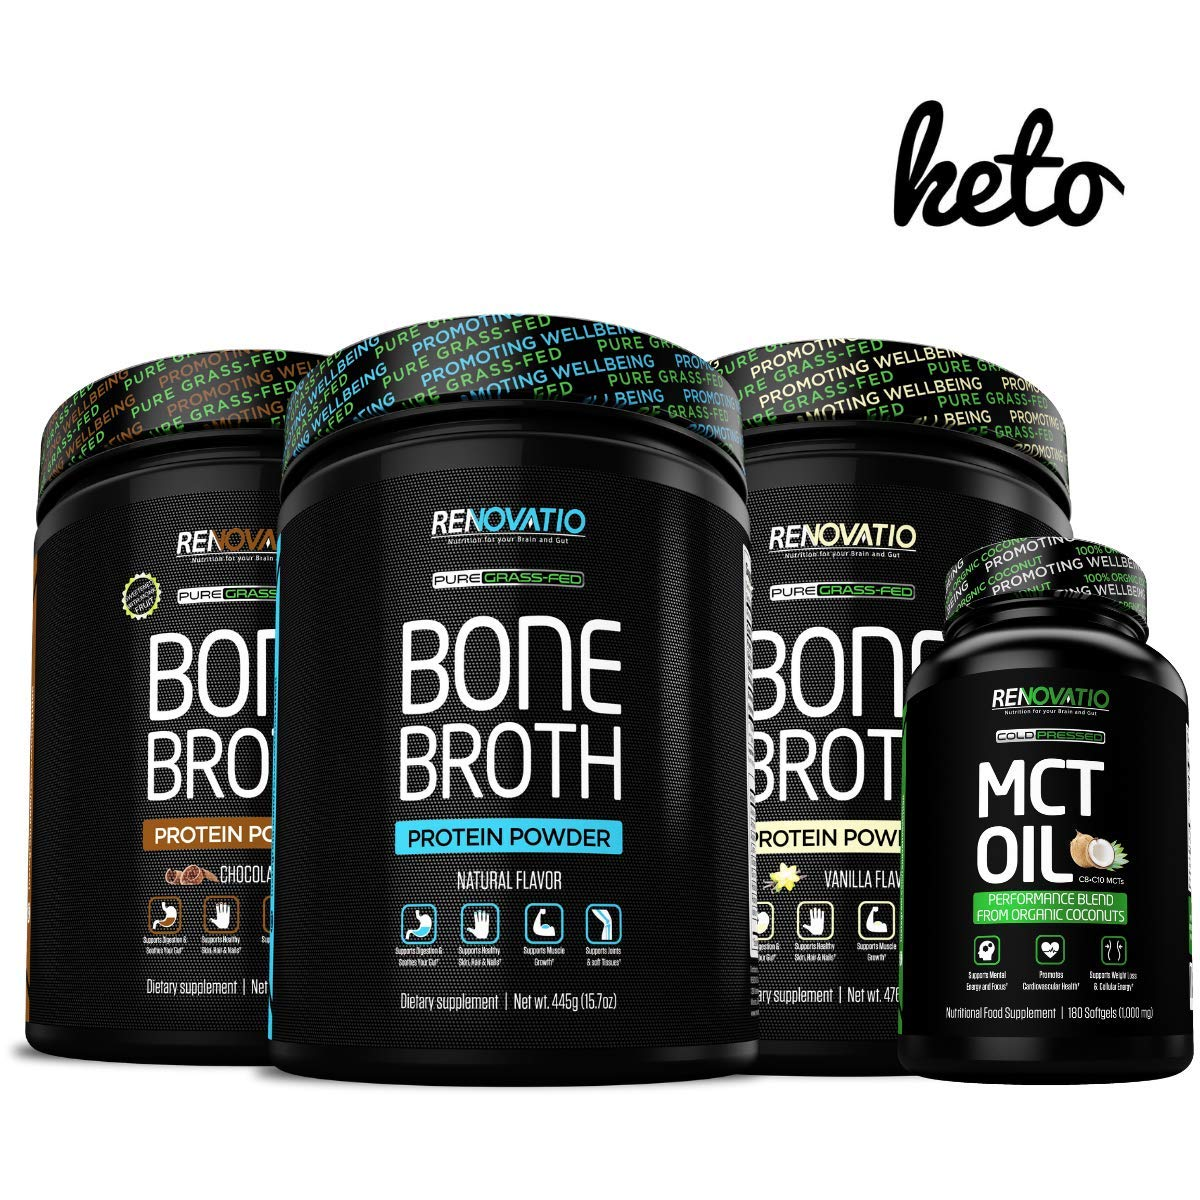 Bone Broth Protein Powder & Organic Coconuts MCT Oil Keto Bundle - Grass-Fed Ancient Form of Nutrition + Vital Collagen. Gluten Dairy Soy Corn Nut Free Natural, Chocolate & Vanilla Flavors